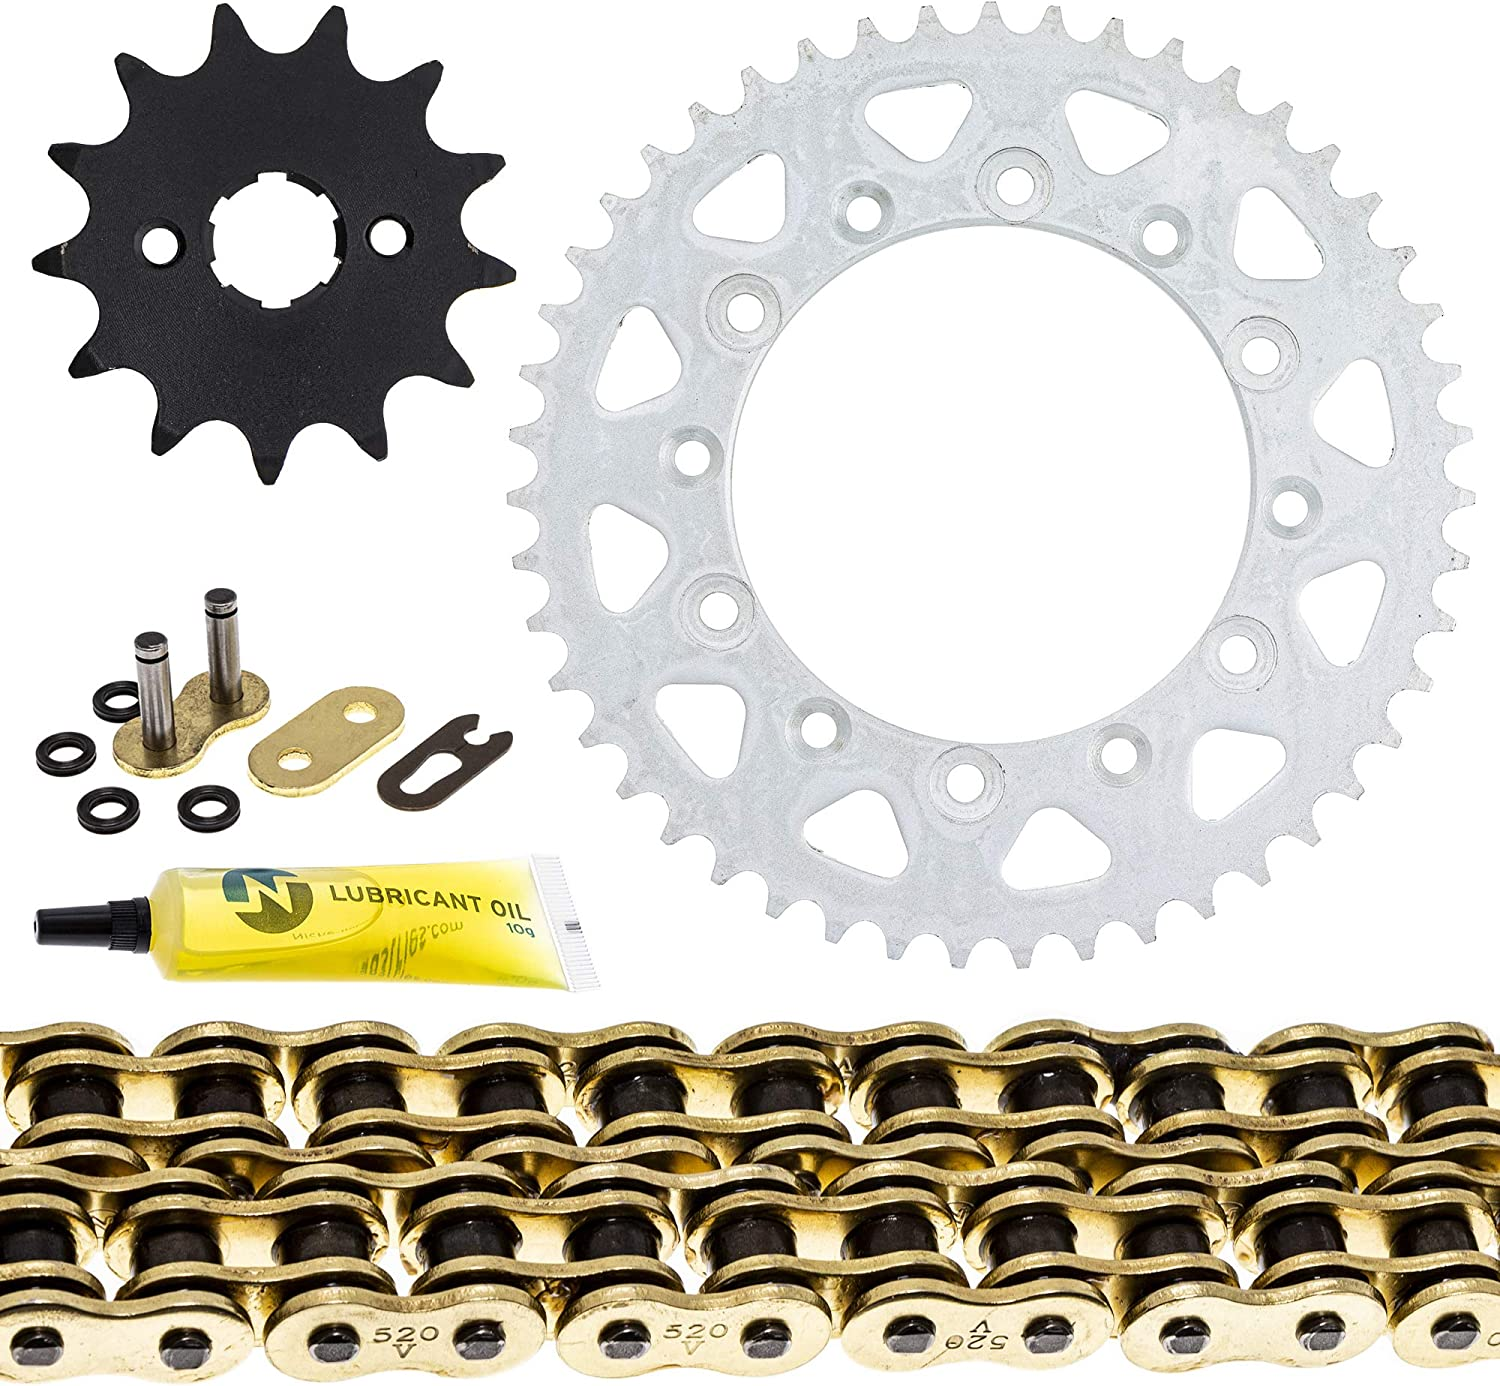 NICHE Drive Sprocket Chain Combo for Kawasaki KDX200 Front 13 Rear 47 Tooth 520V O-Ring 110 Links